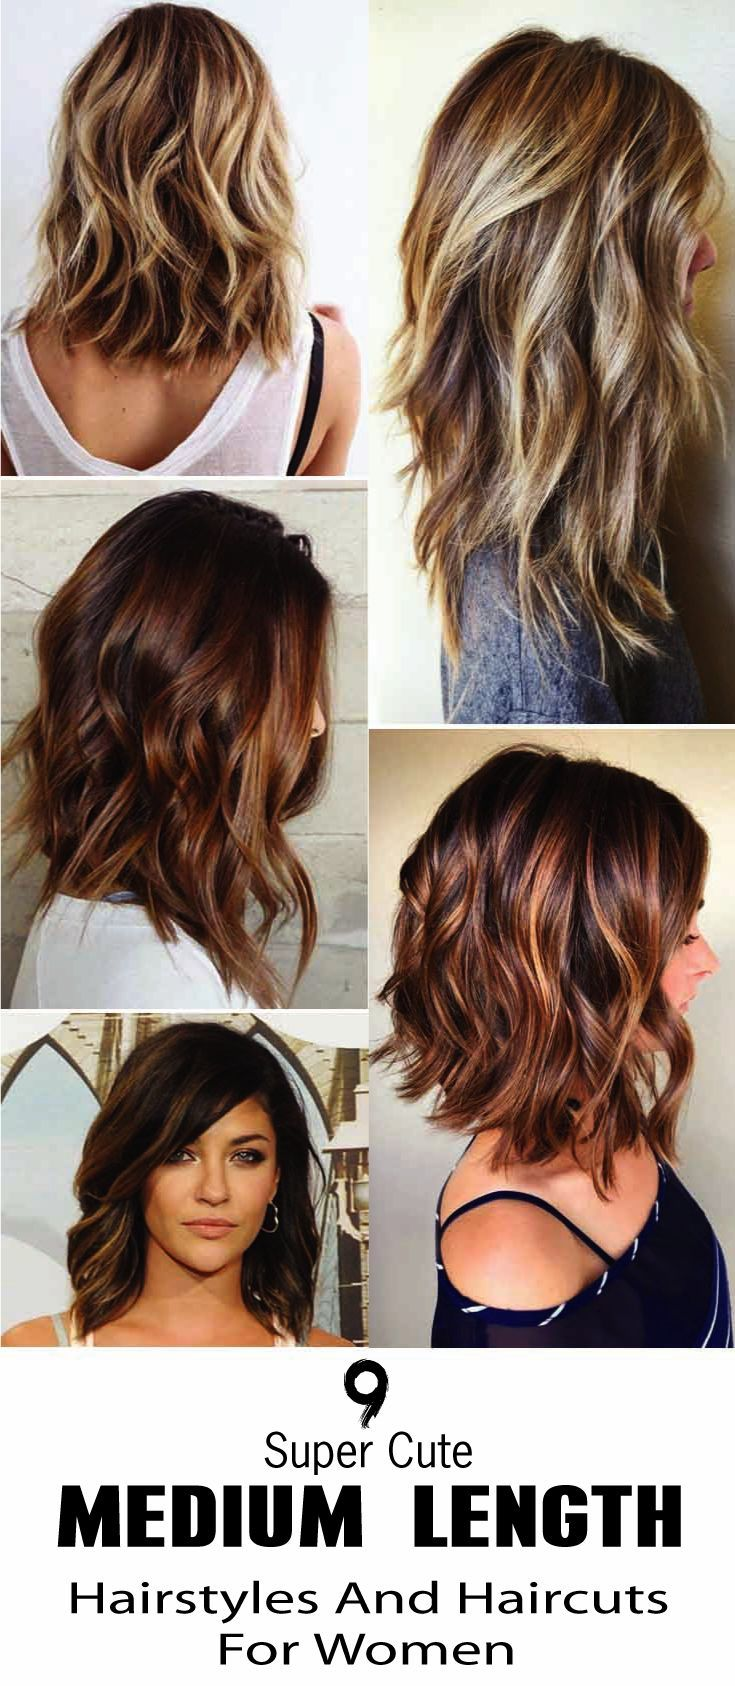 Haircuts Pretty for medium length hair advise dress in winter in 2019